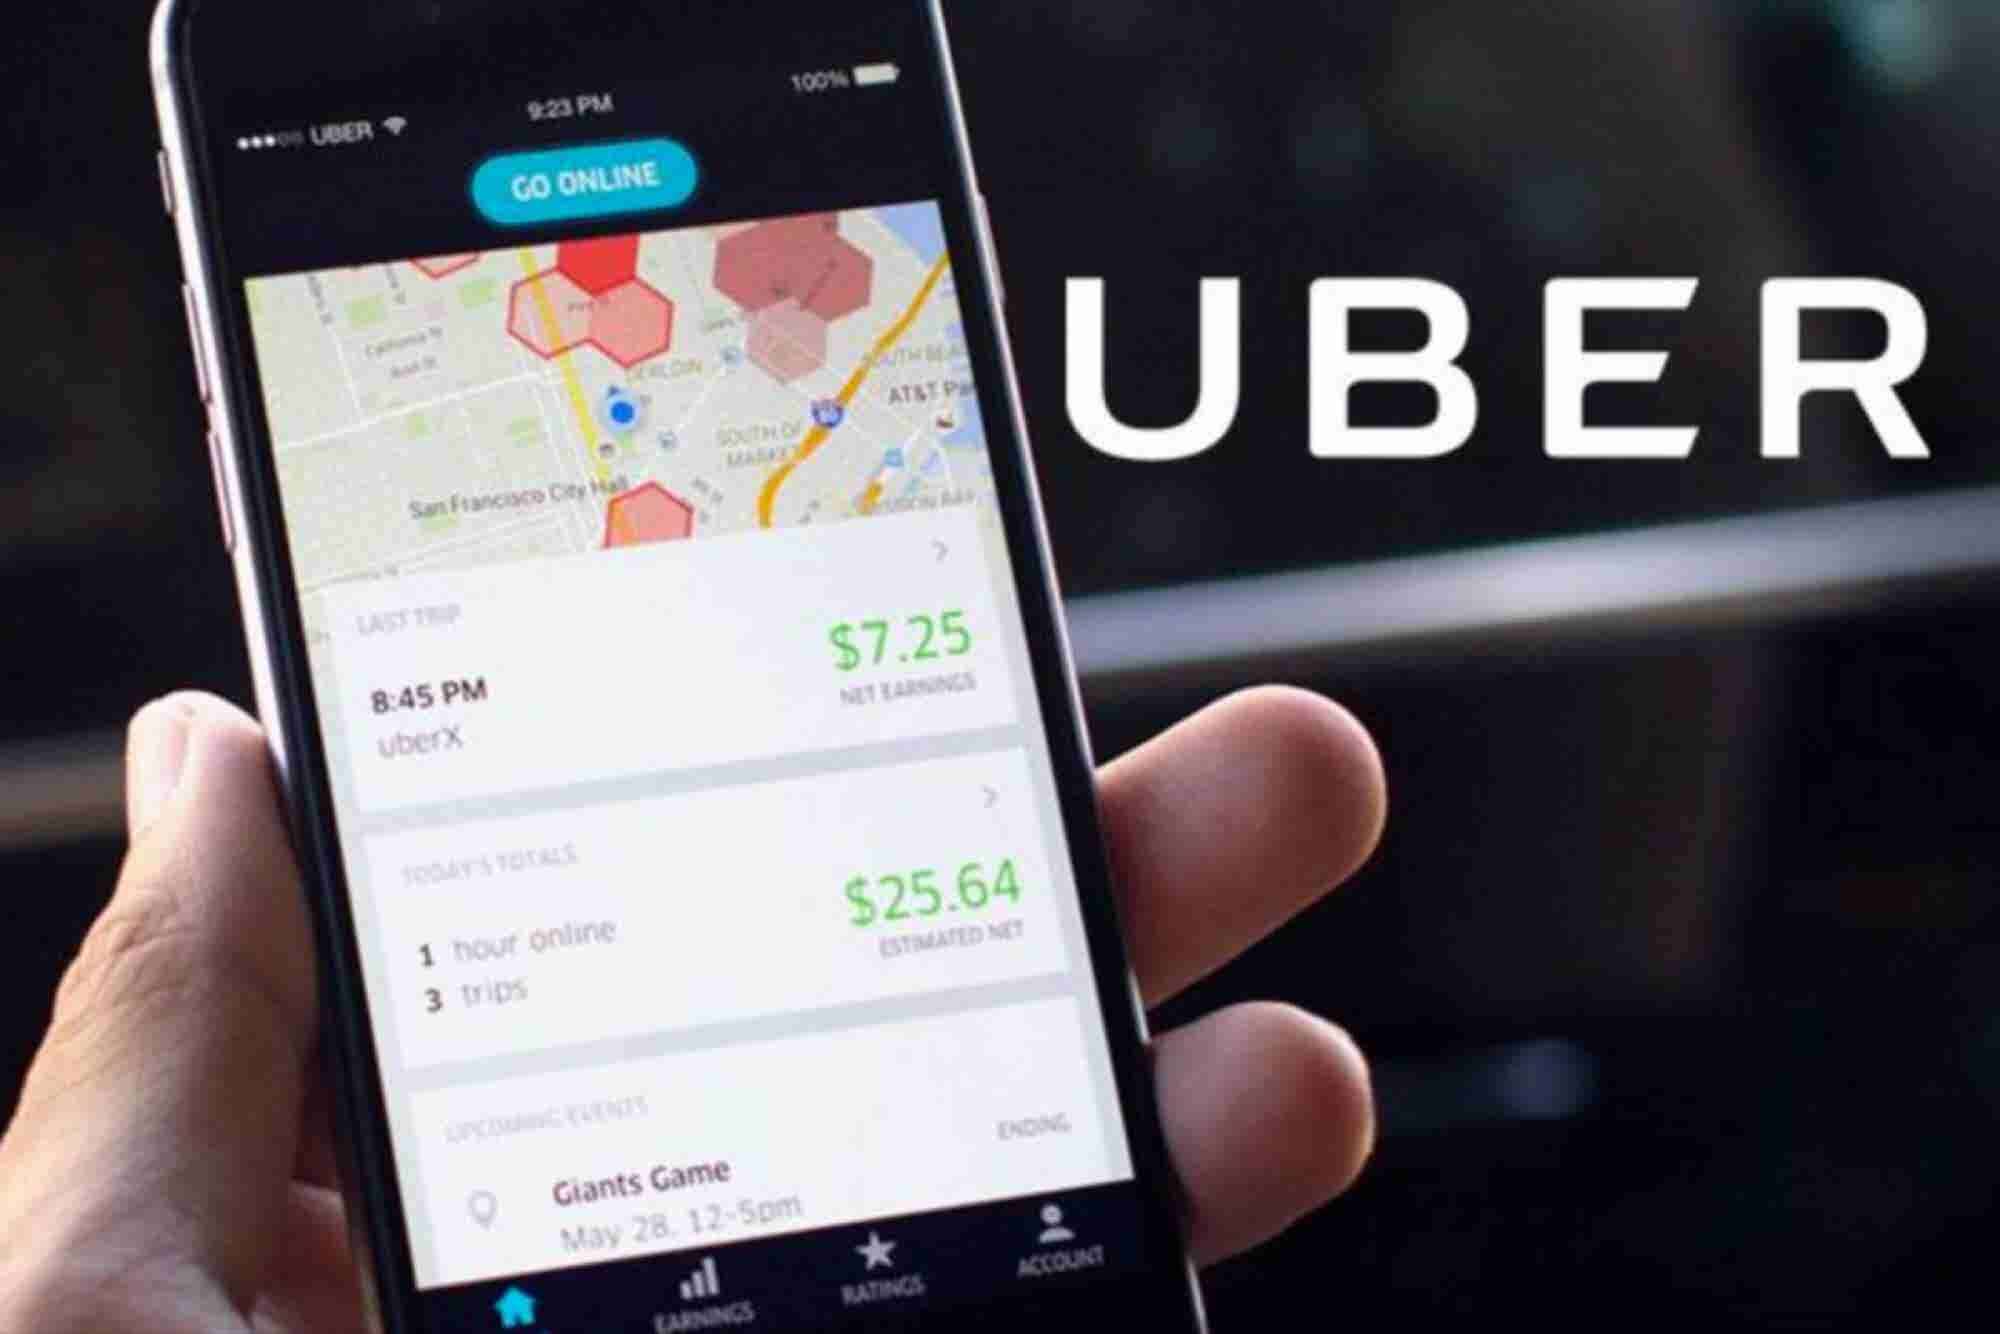 Uber Got Hacked a Year Ago and Paid the Hackers to Keep It Secret